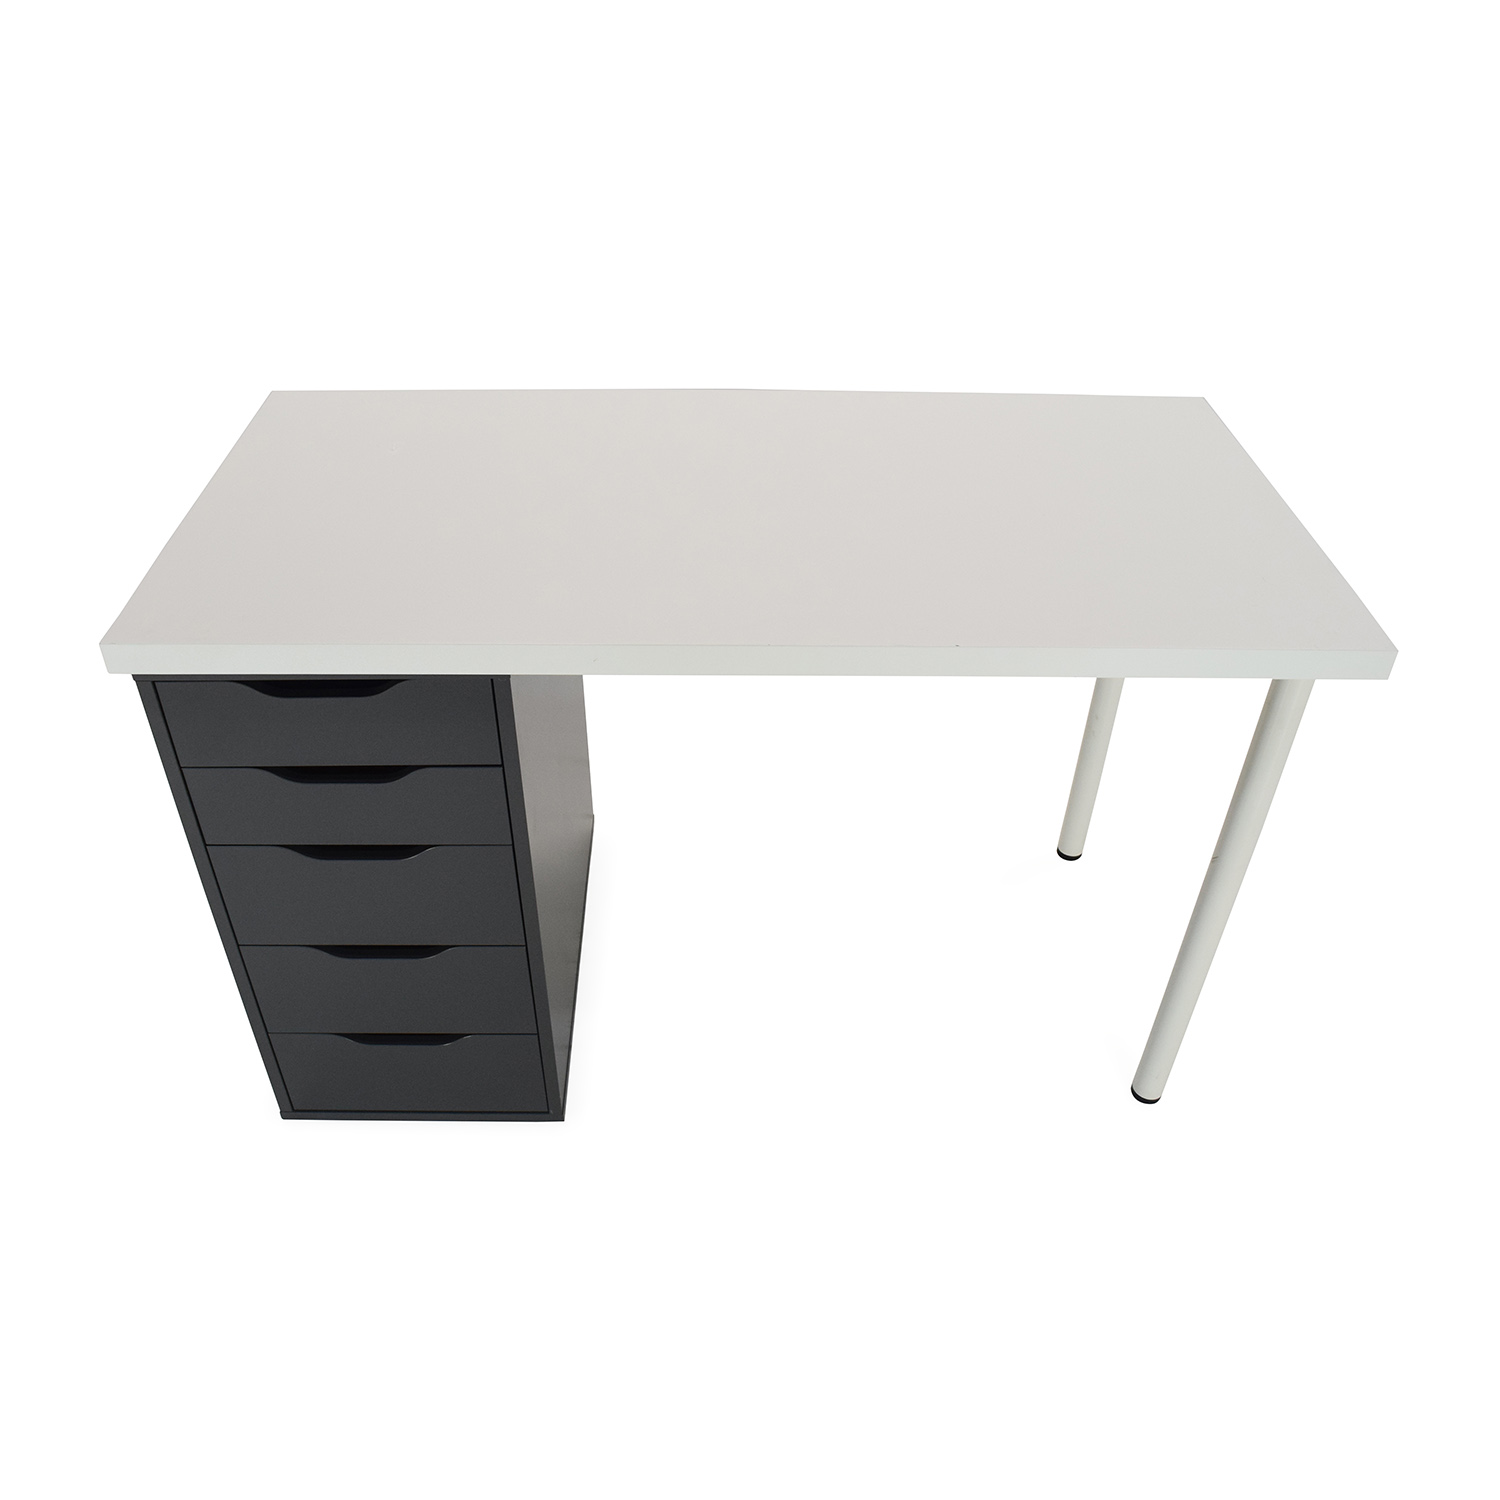 64% OFF L L Bean L L Bean Mission Desk Tables